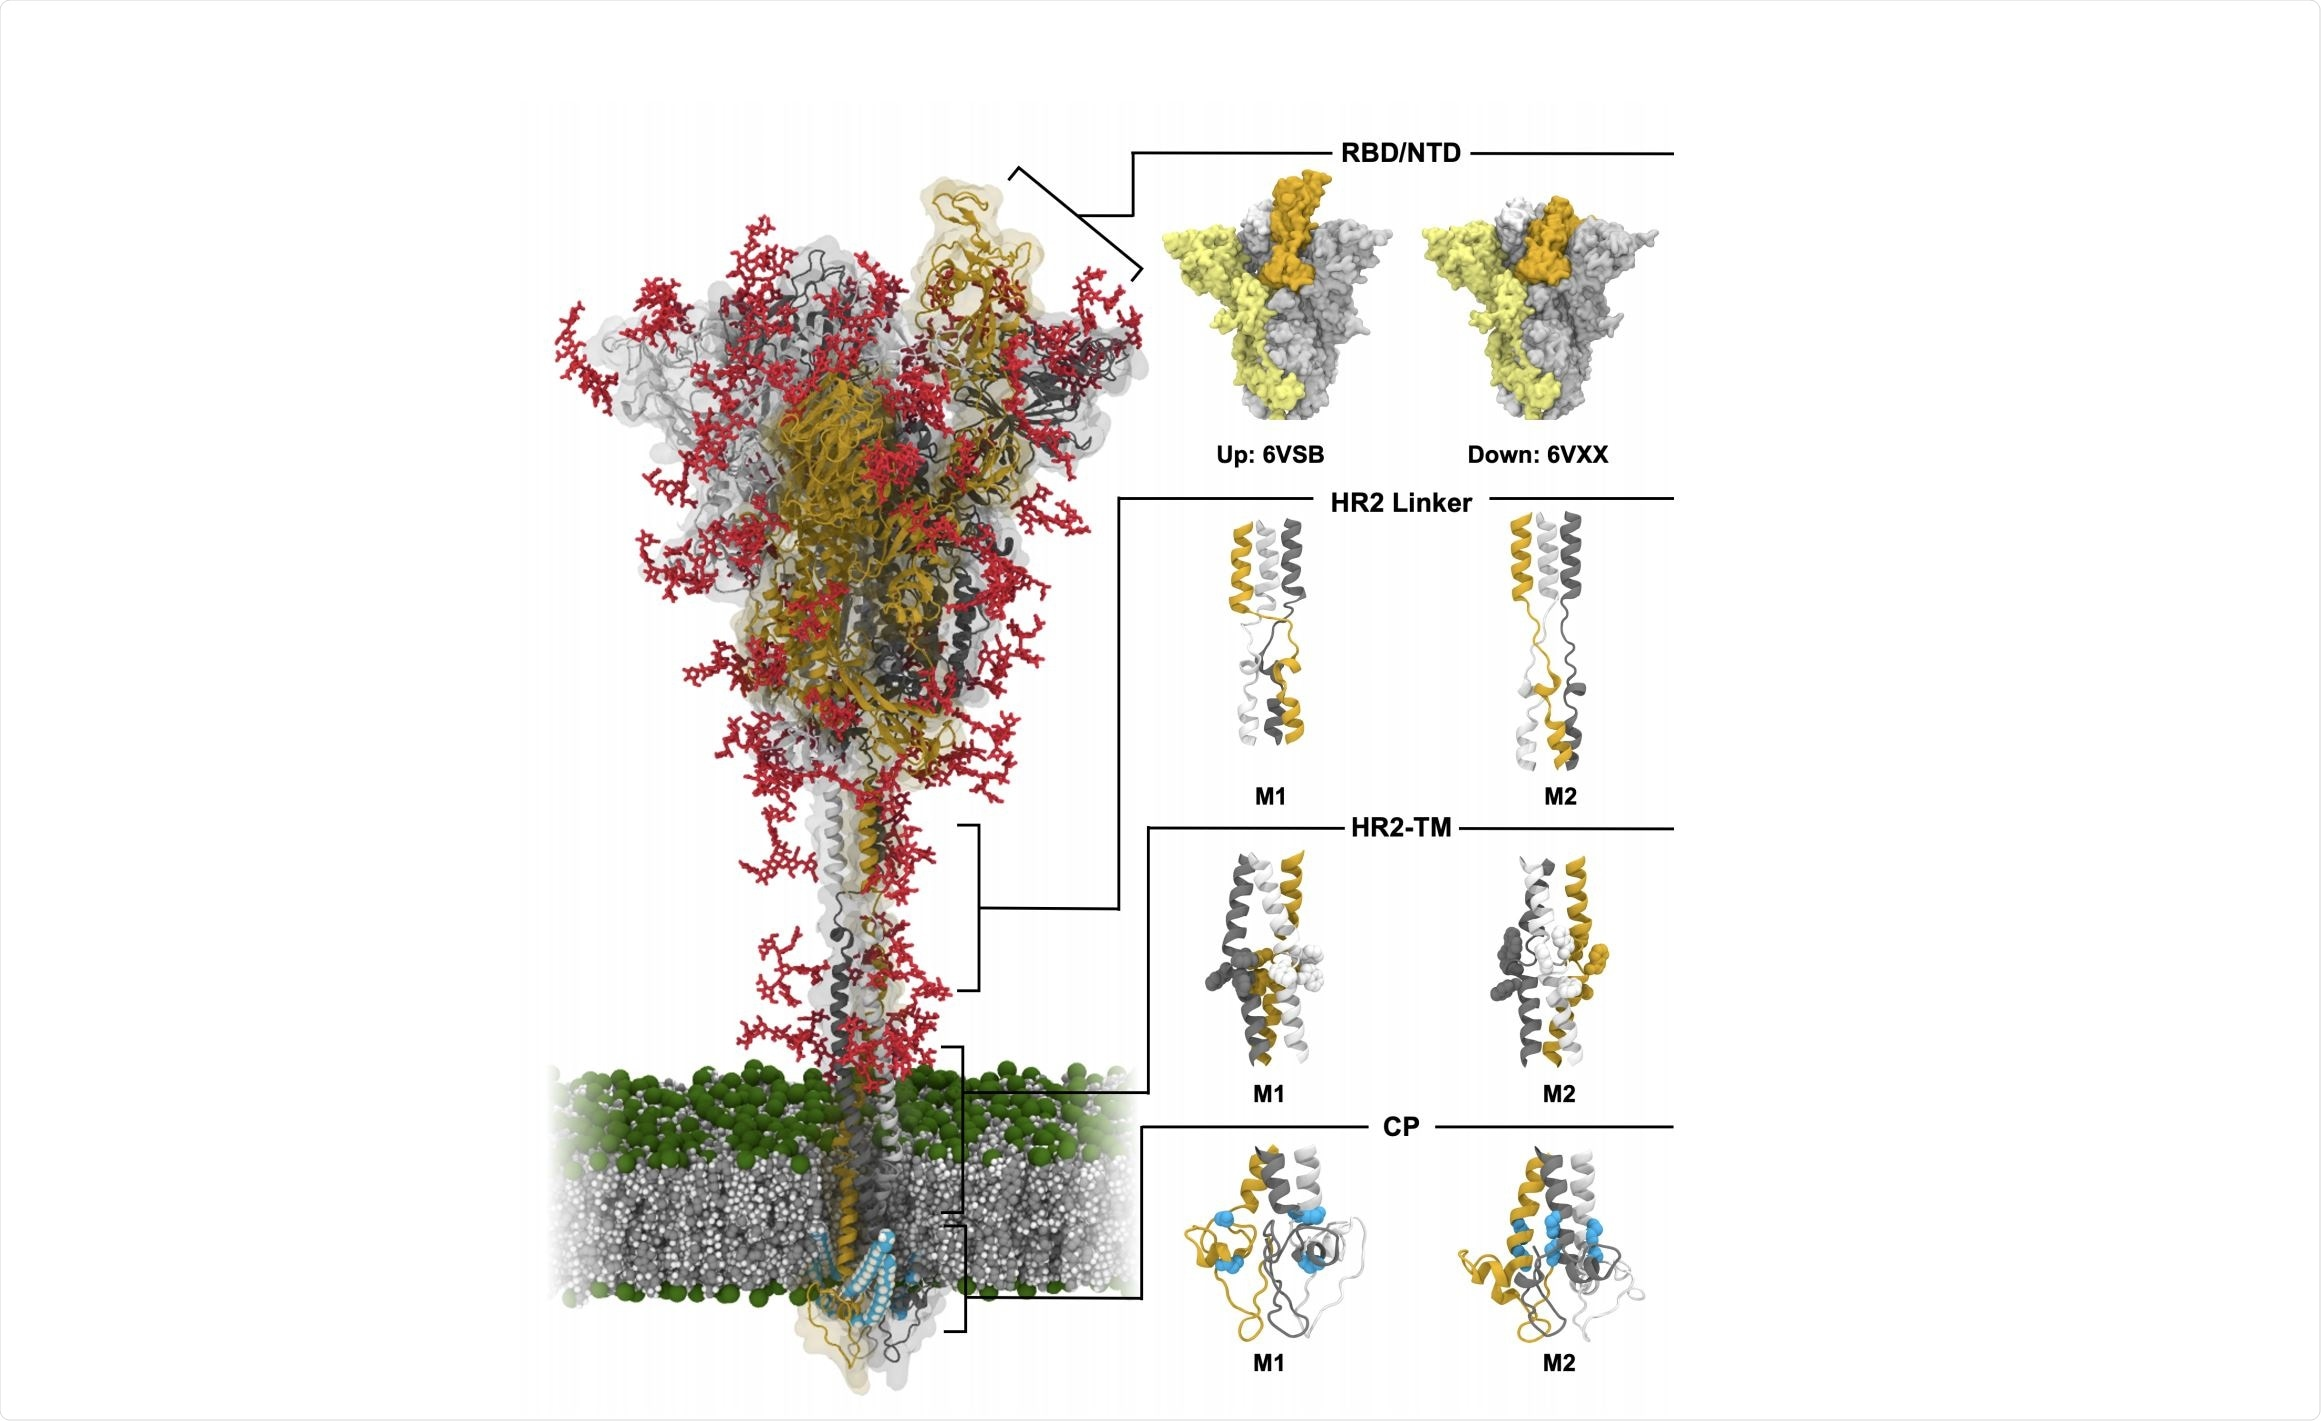 Model structure of fully-glycosylated full-length SARS-CoV-2 S protein in a viral membrane.